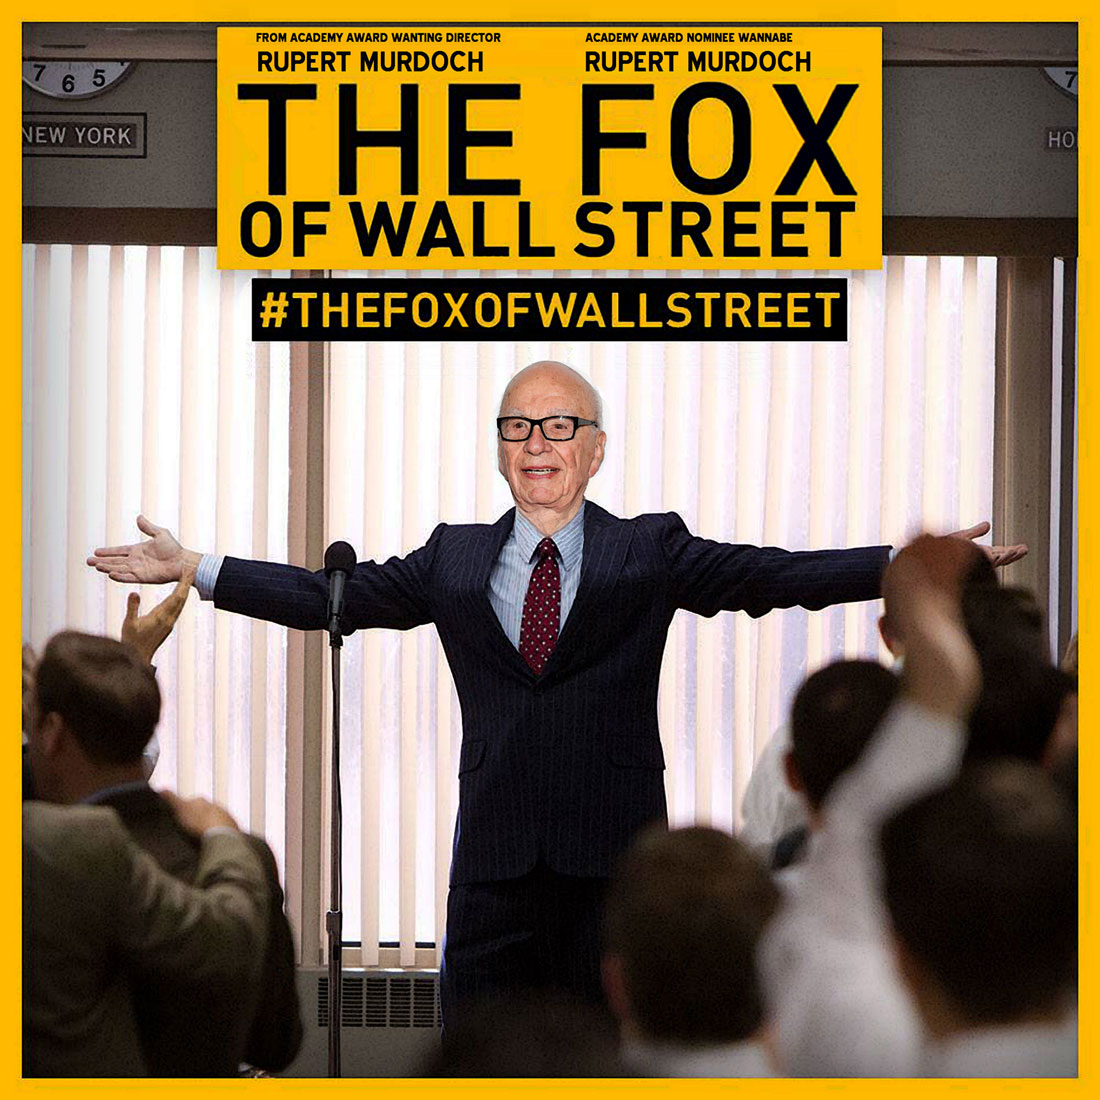 THE FOX OF WALL STREET